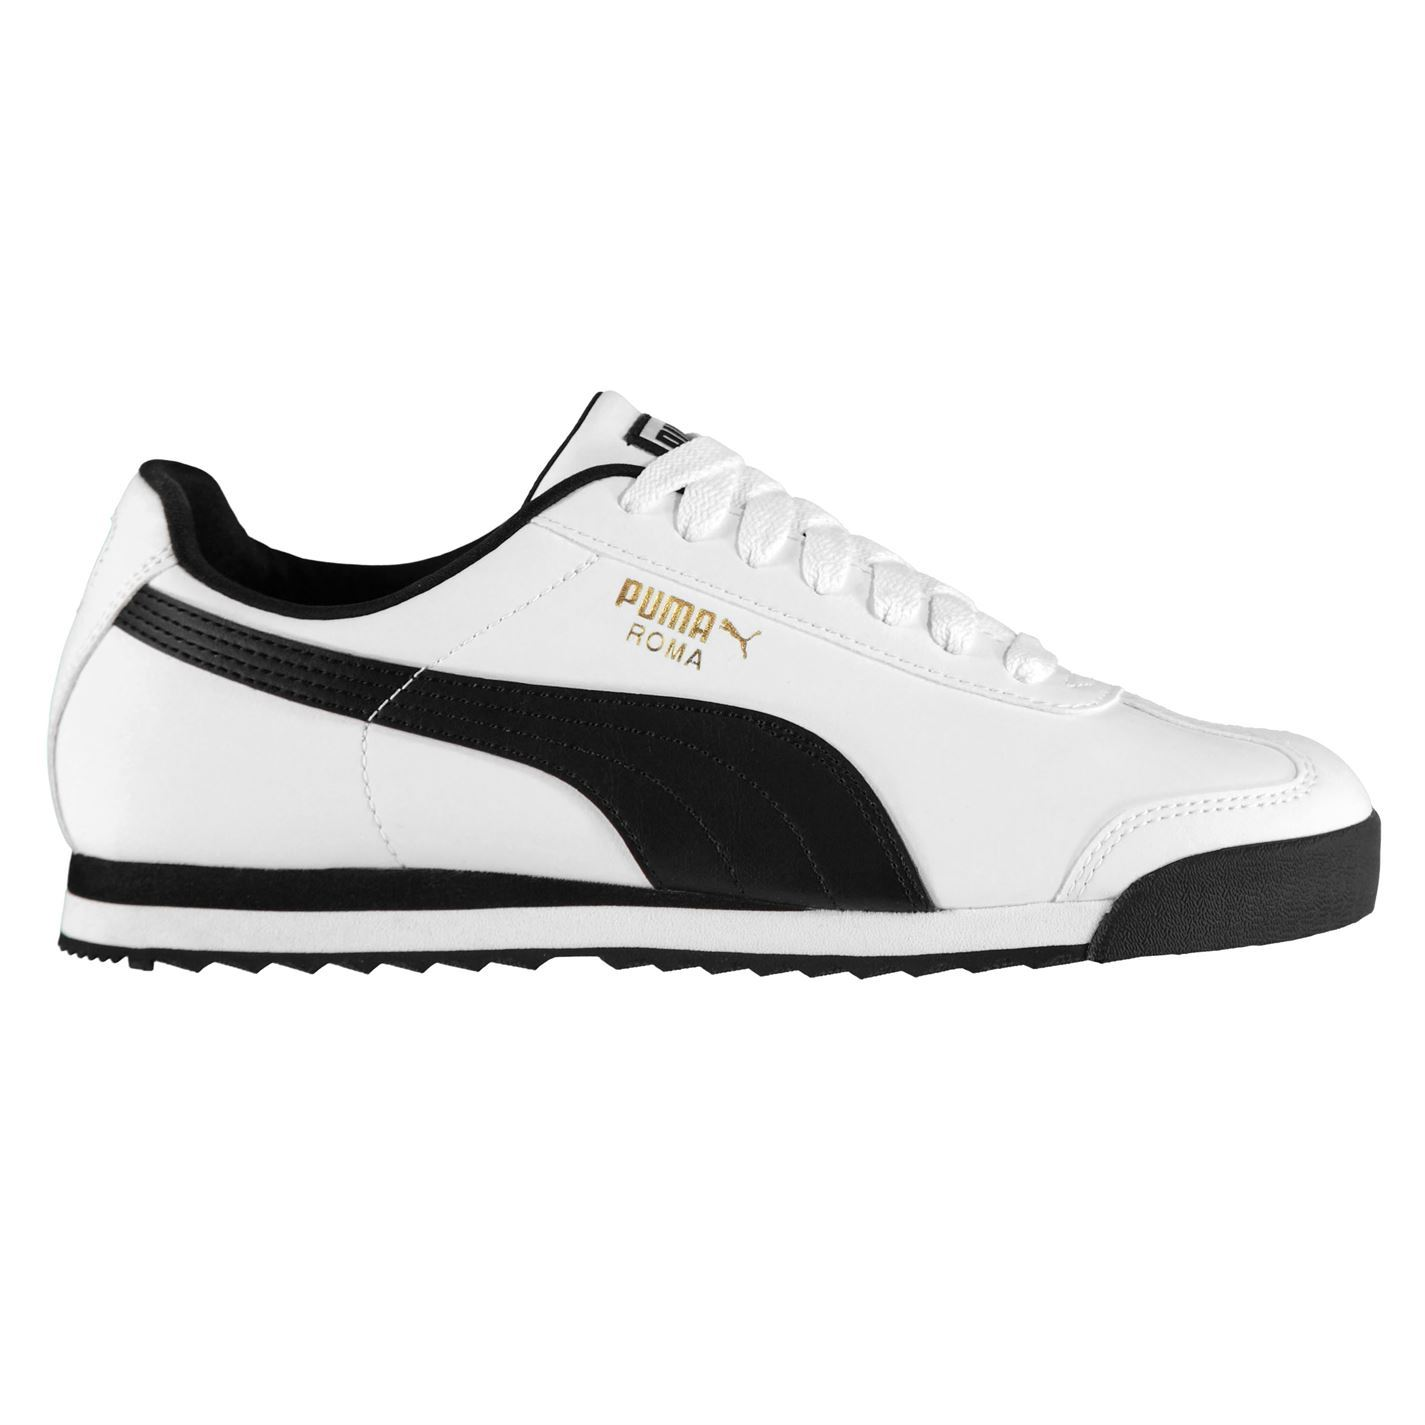 Puma-Roma-Basic-Trainers-Mens-Athleisure-Footwear-Shoes-Sneakers thumbnail 28